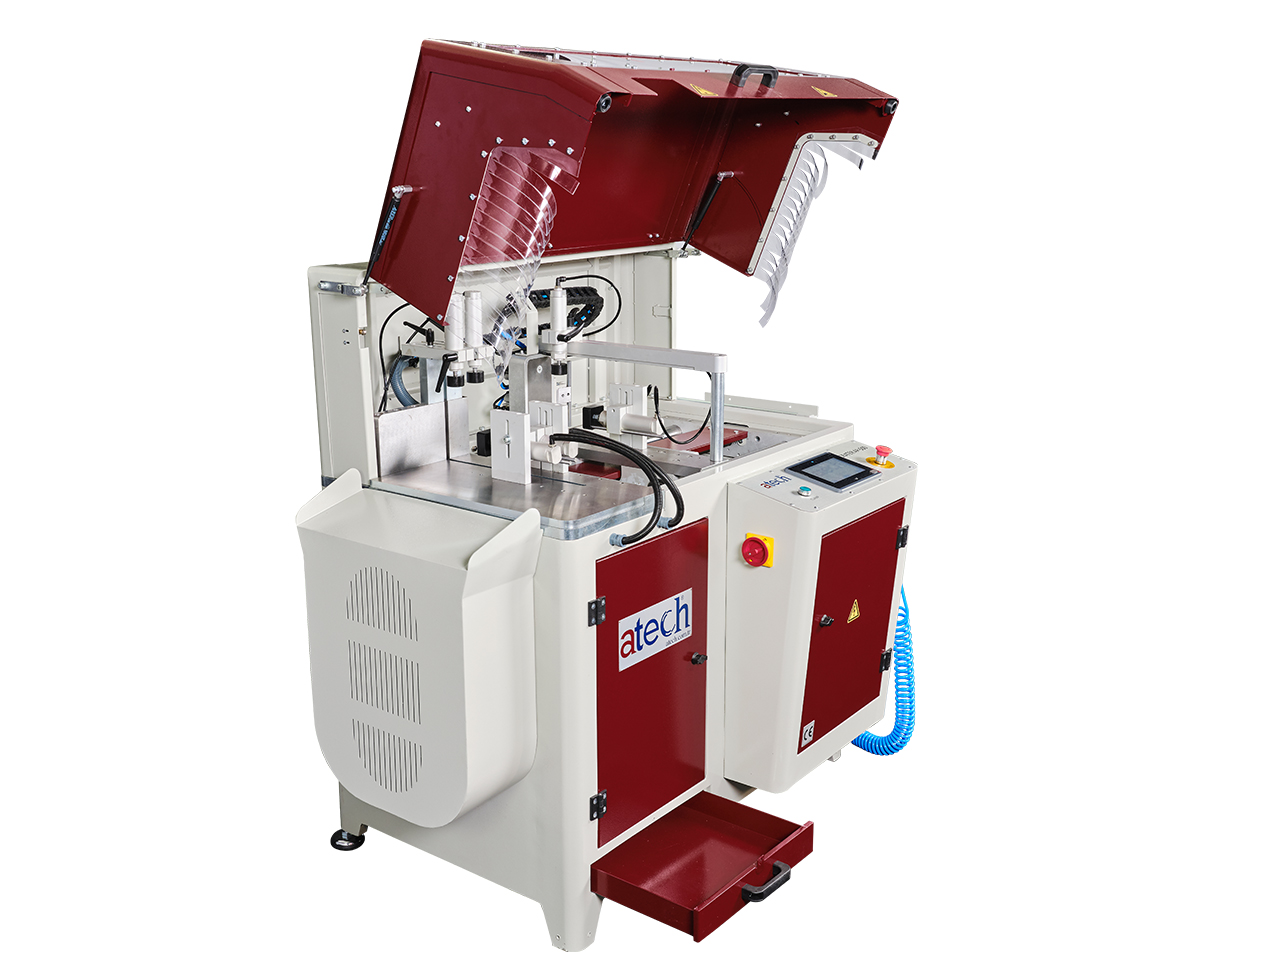 Crater AP500 - Automatic Aluminium Upcut Slicing Machine